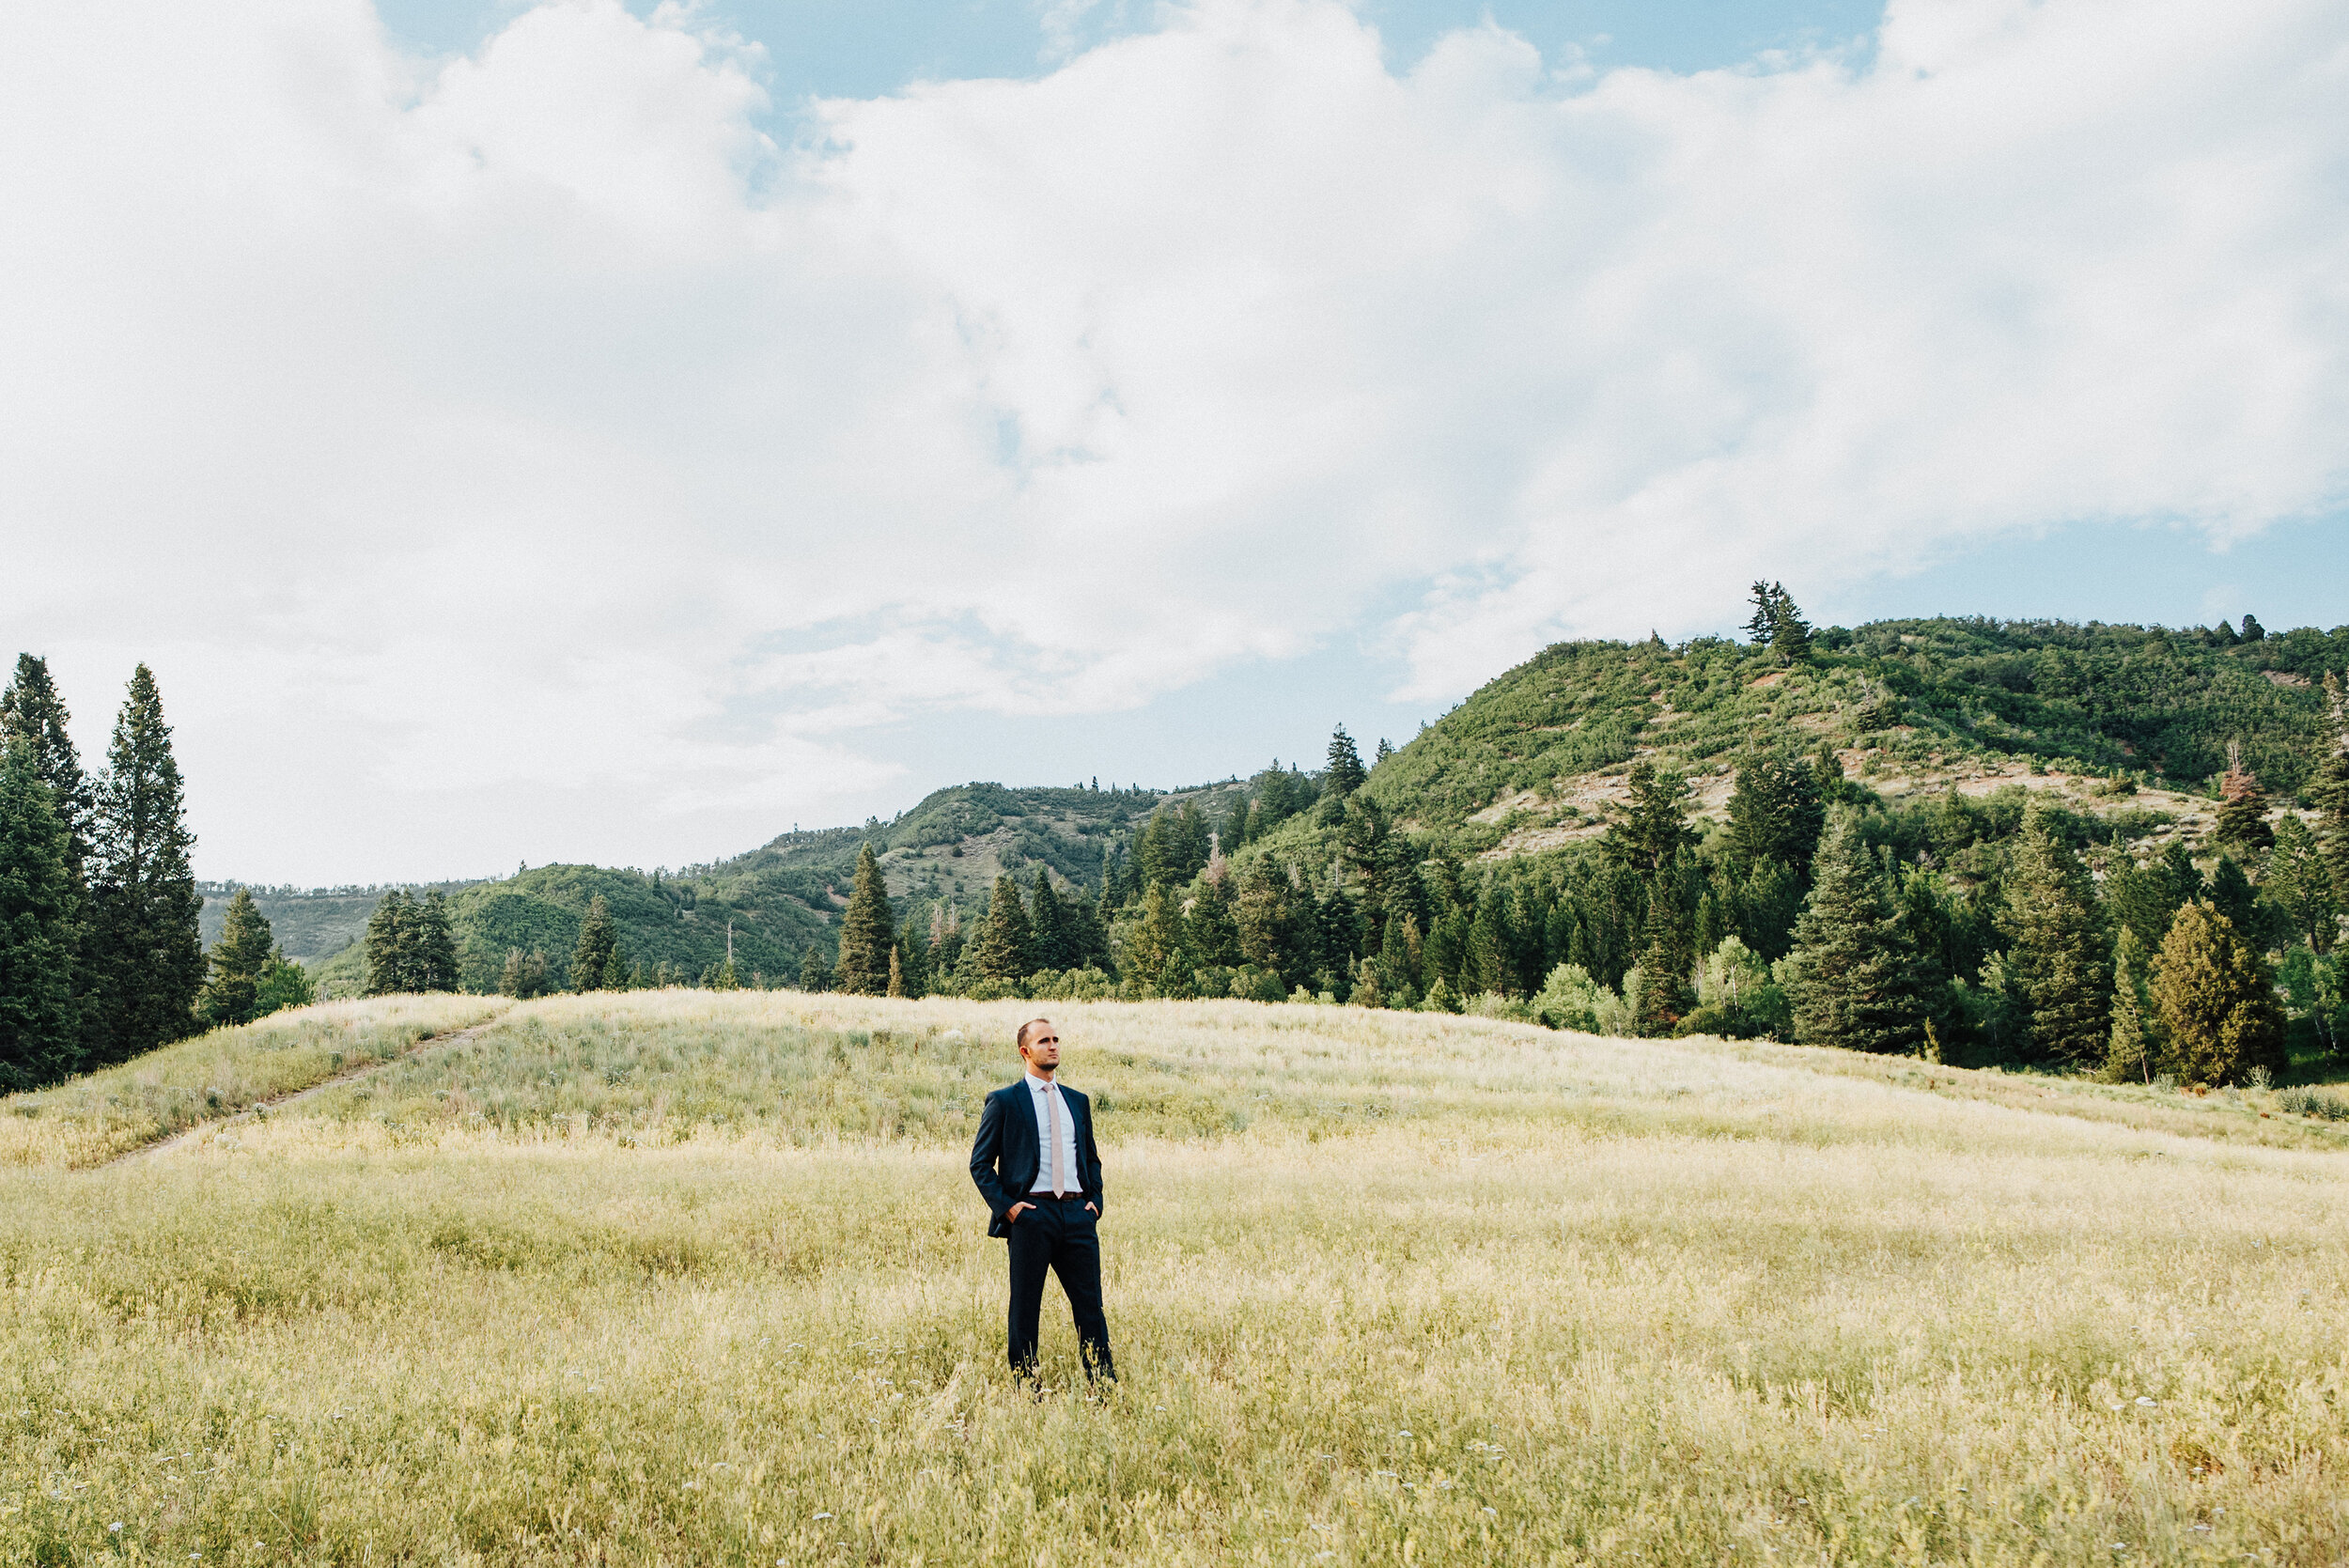 A handsome groom strikes a confident pose looking off into the distance with hands in his pockets in the middle of a grassy field. American Fork Canyon groom individual photo powerful pose navy suit light pink tie tall grass small mountains evergreen trees golden sunlight #newhusband #groomgoals #younglove #tibbleforkreservoir #utahwedding #americanforkcanyon #formals #weddingphotography #weddingphotographer #confidence #groomphoto #groom #individuals